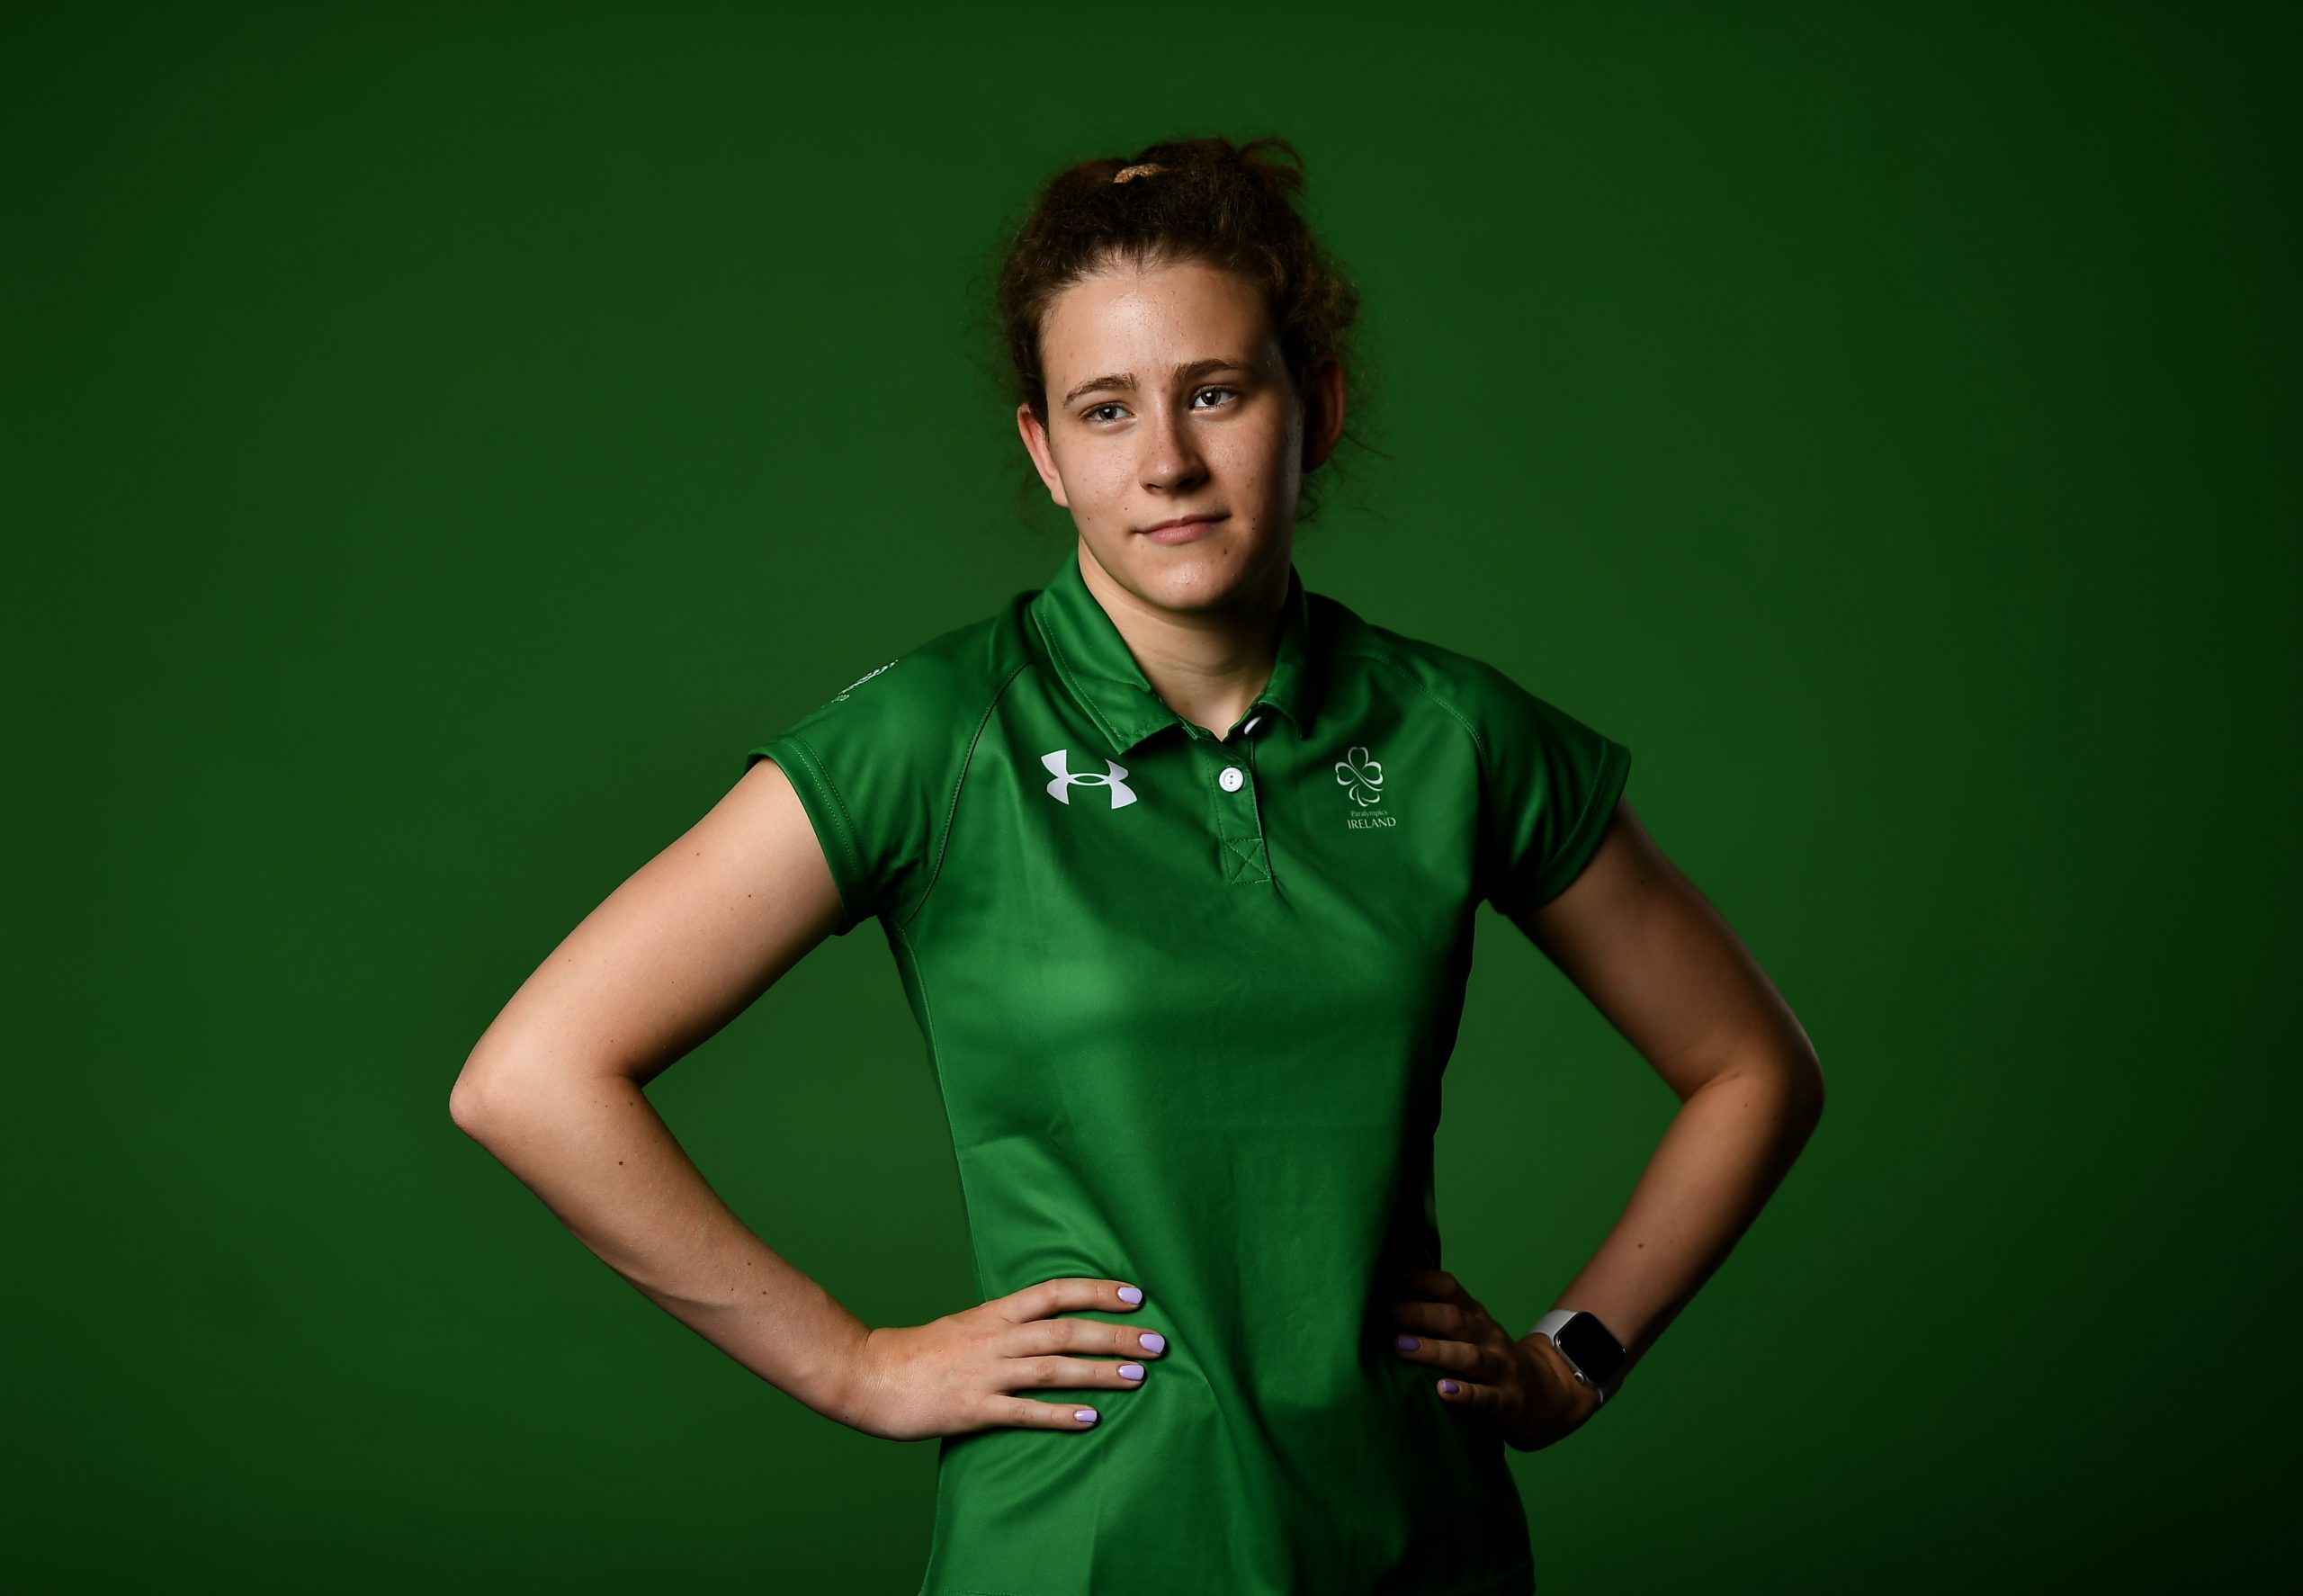 22 July 2021; Swimmer Róisín Ní Riain during a Tokyo 2020 Paralympic Games Team Announcement at Abbotstown in Dublin. Photo by David Fitzgerald/Sportsfile *** NO REPRODUCTION FEE ***